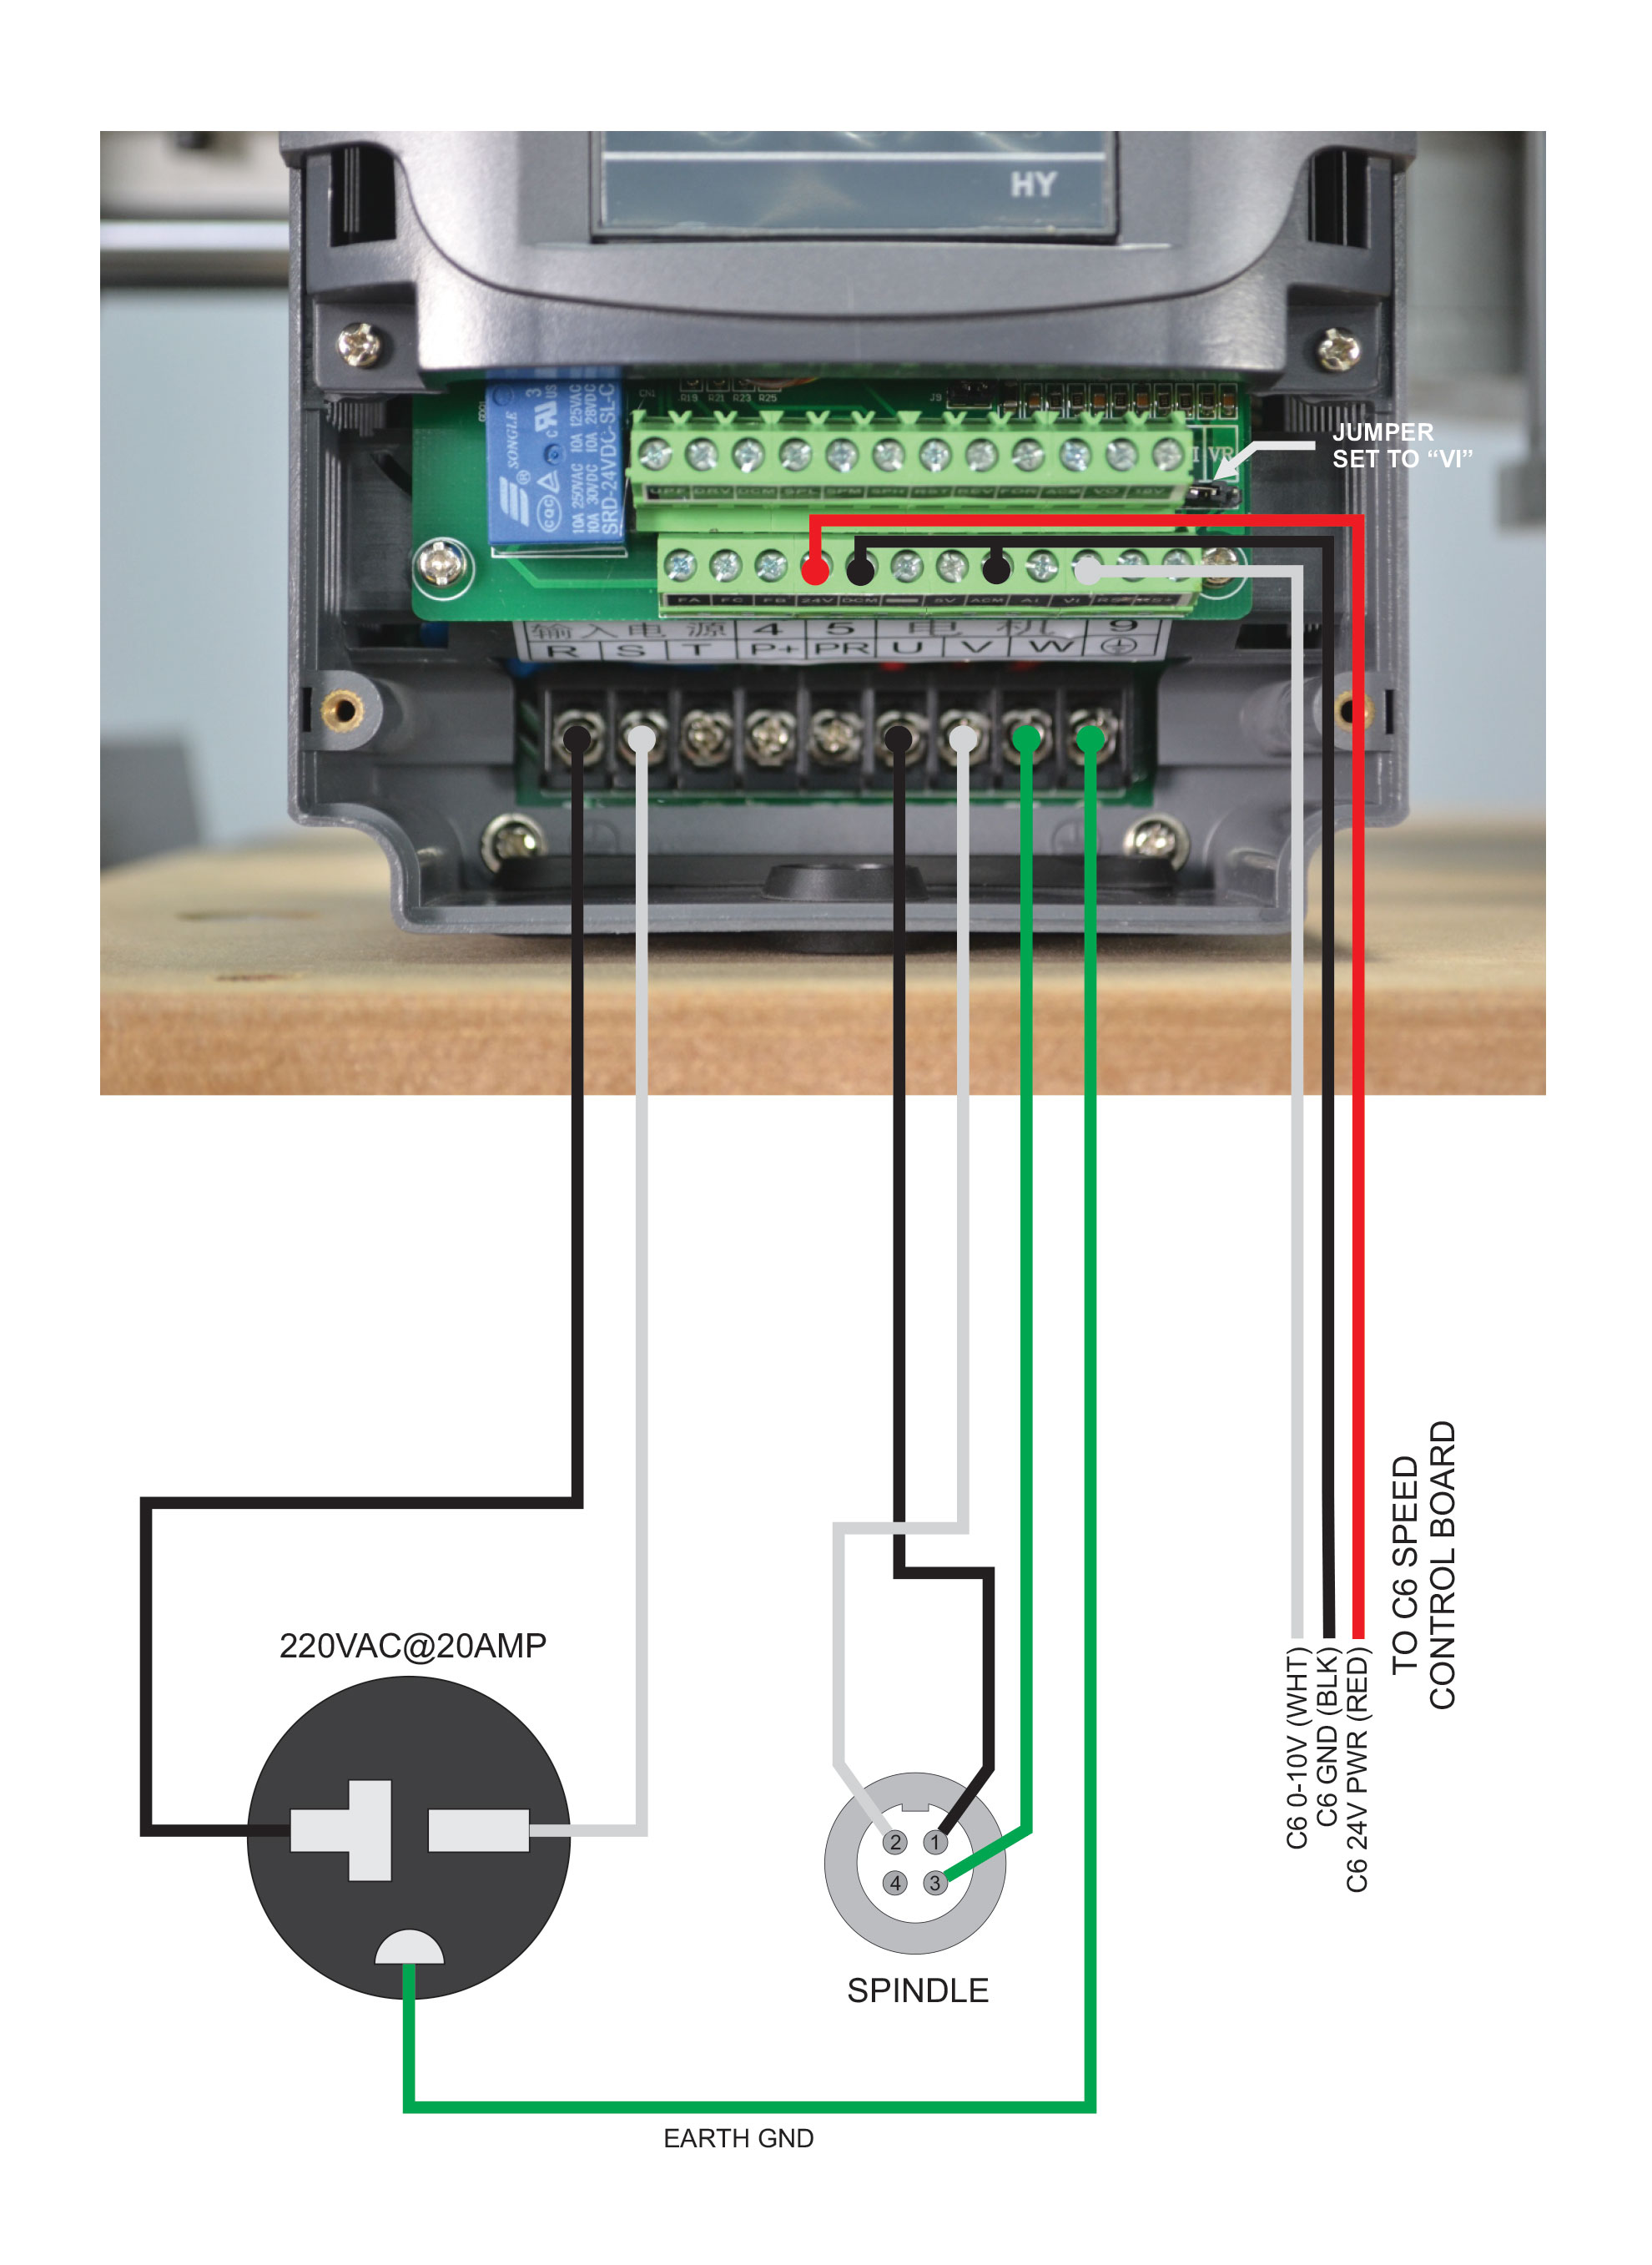 Vfd Wiring And Config Page 3 Routakit Forum Control Machine Motor Re